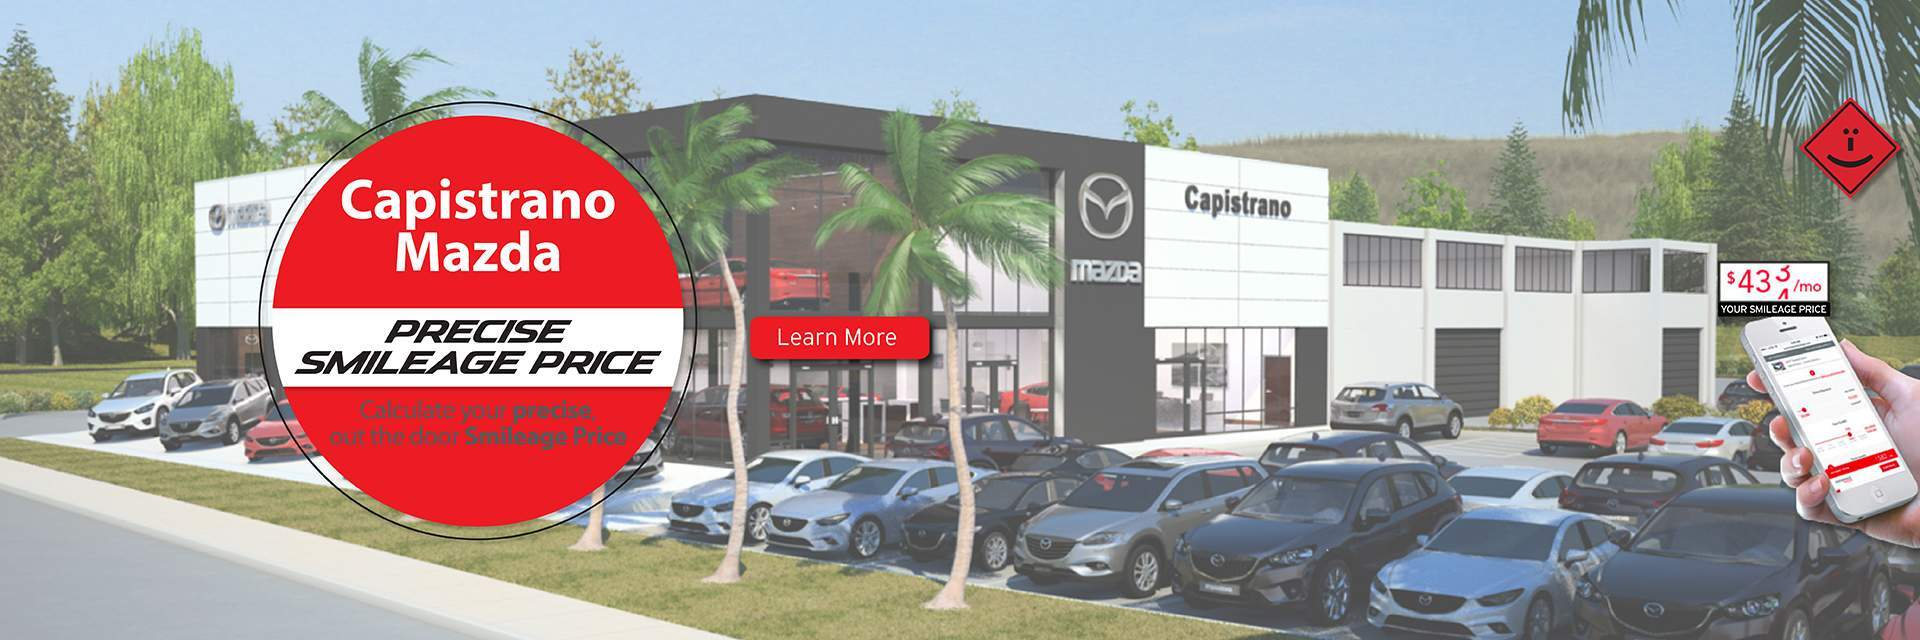 Calculate your Precise Smileage Price at Capistrano Mazda today!